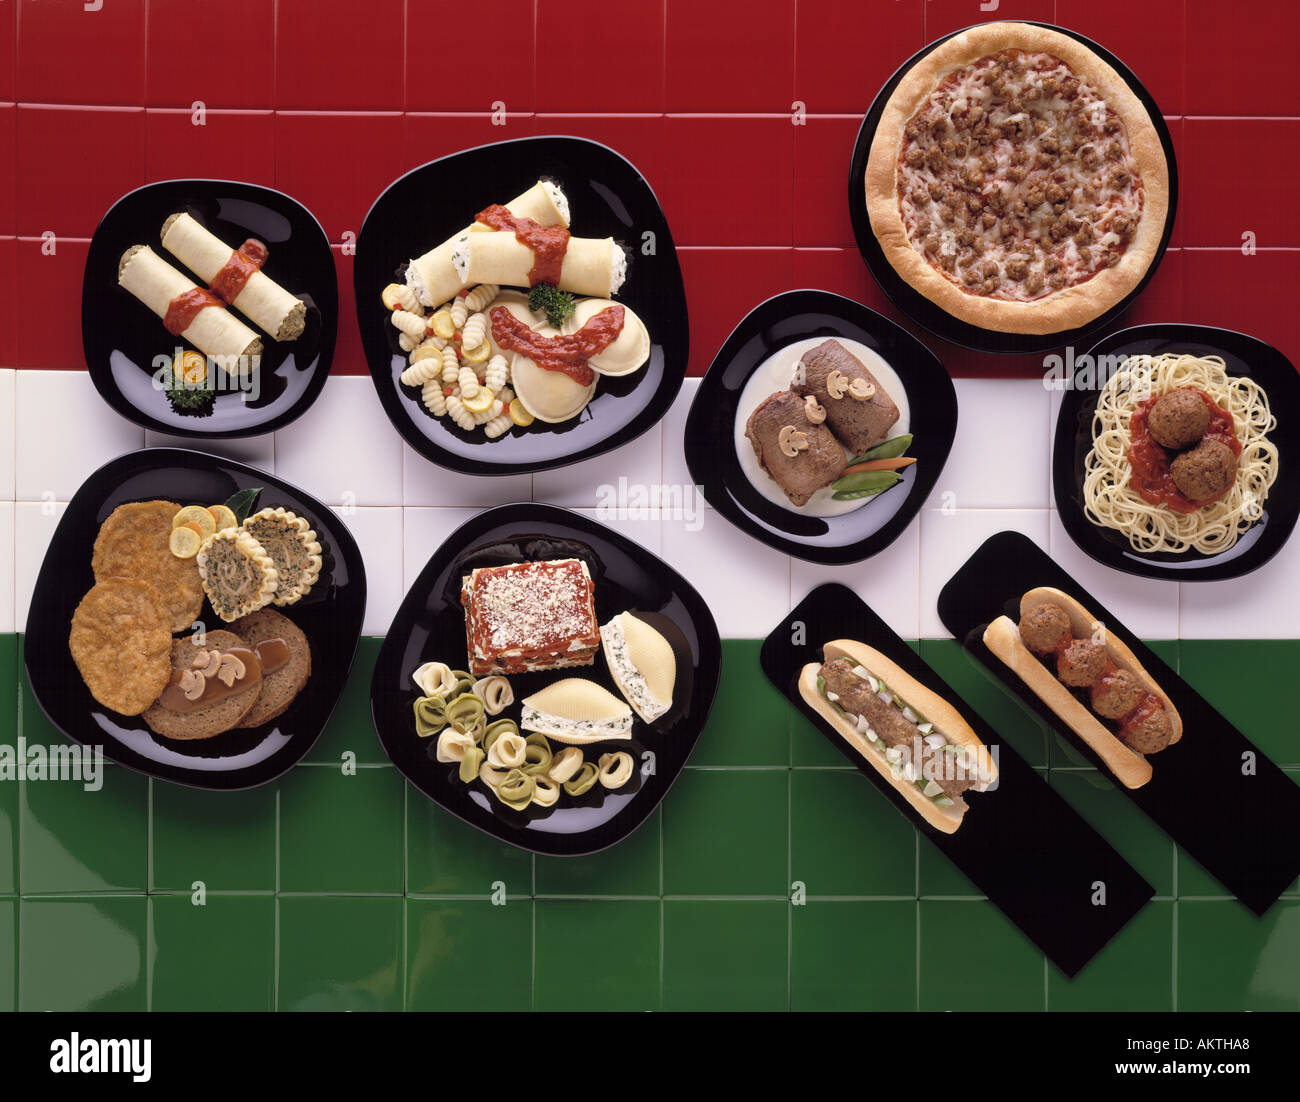 Assortment Italian Foods On Black Dinner Plates Appetizers Red White Stock Photo Alamy